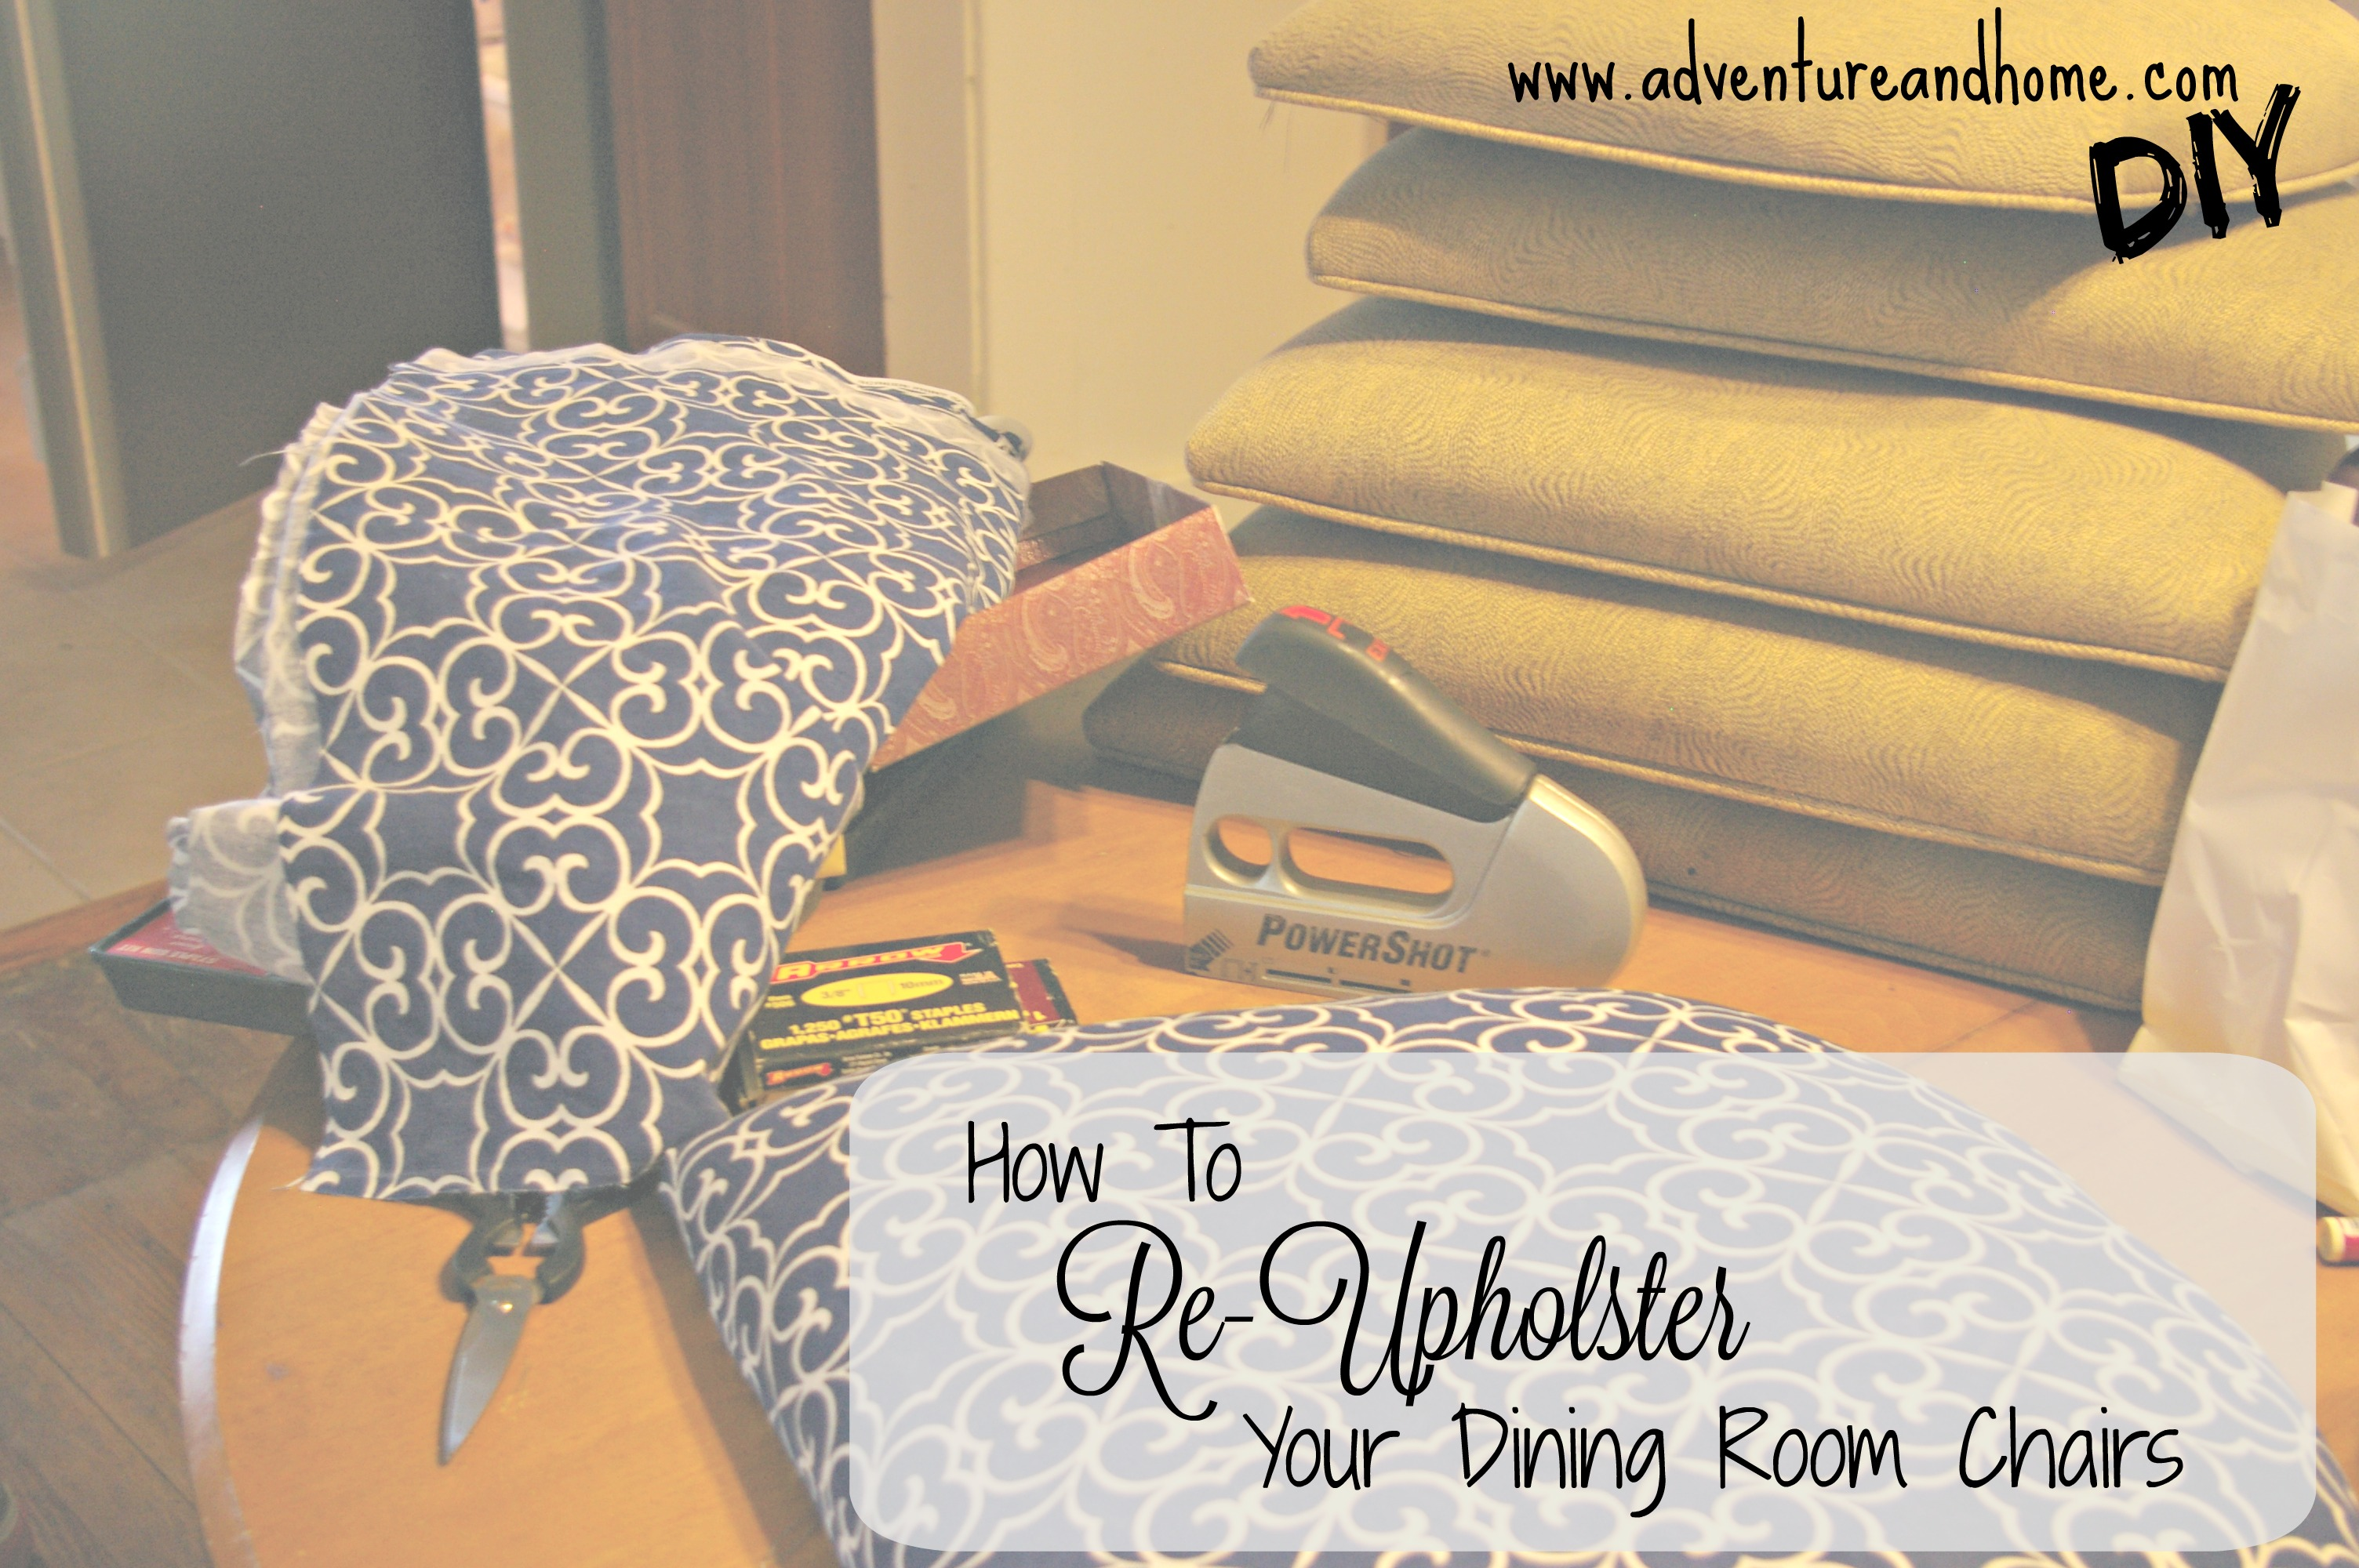 How To Re-Upholster Dining Room Chairs